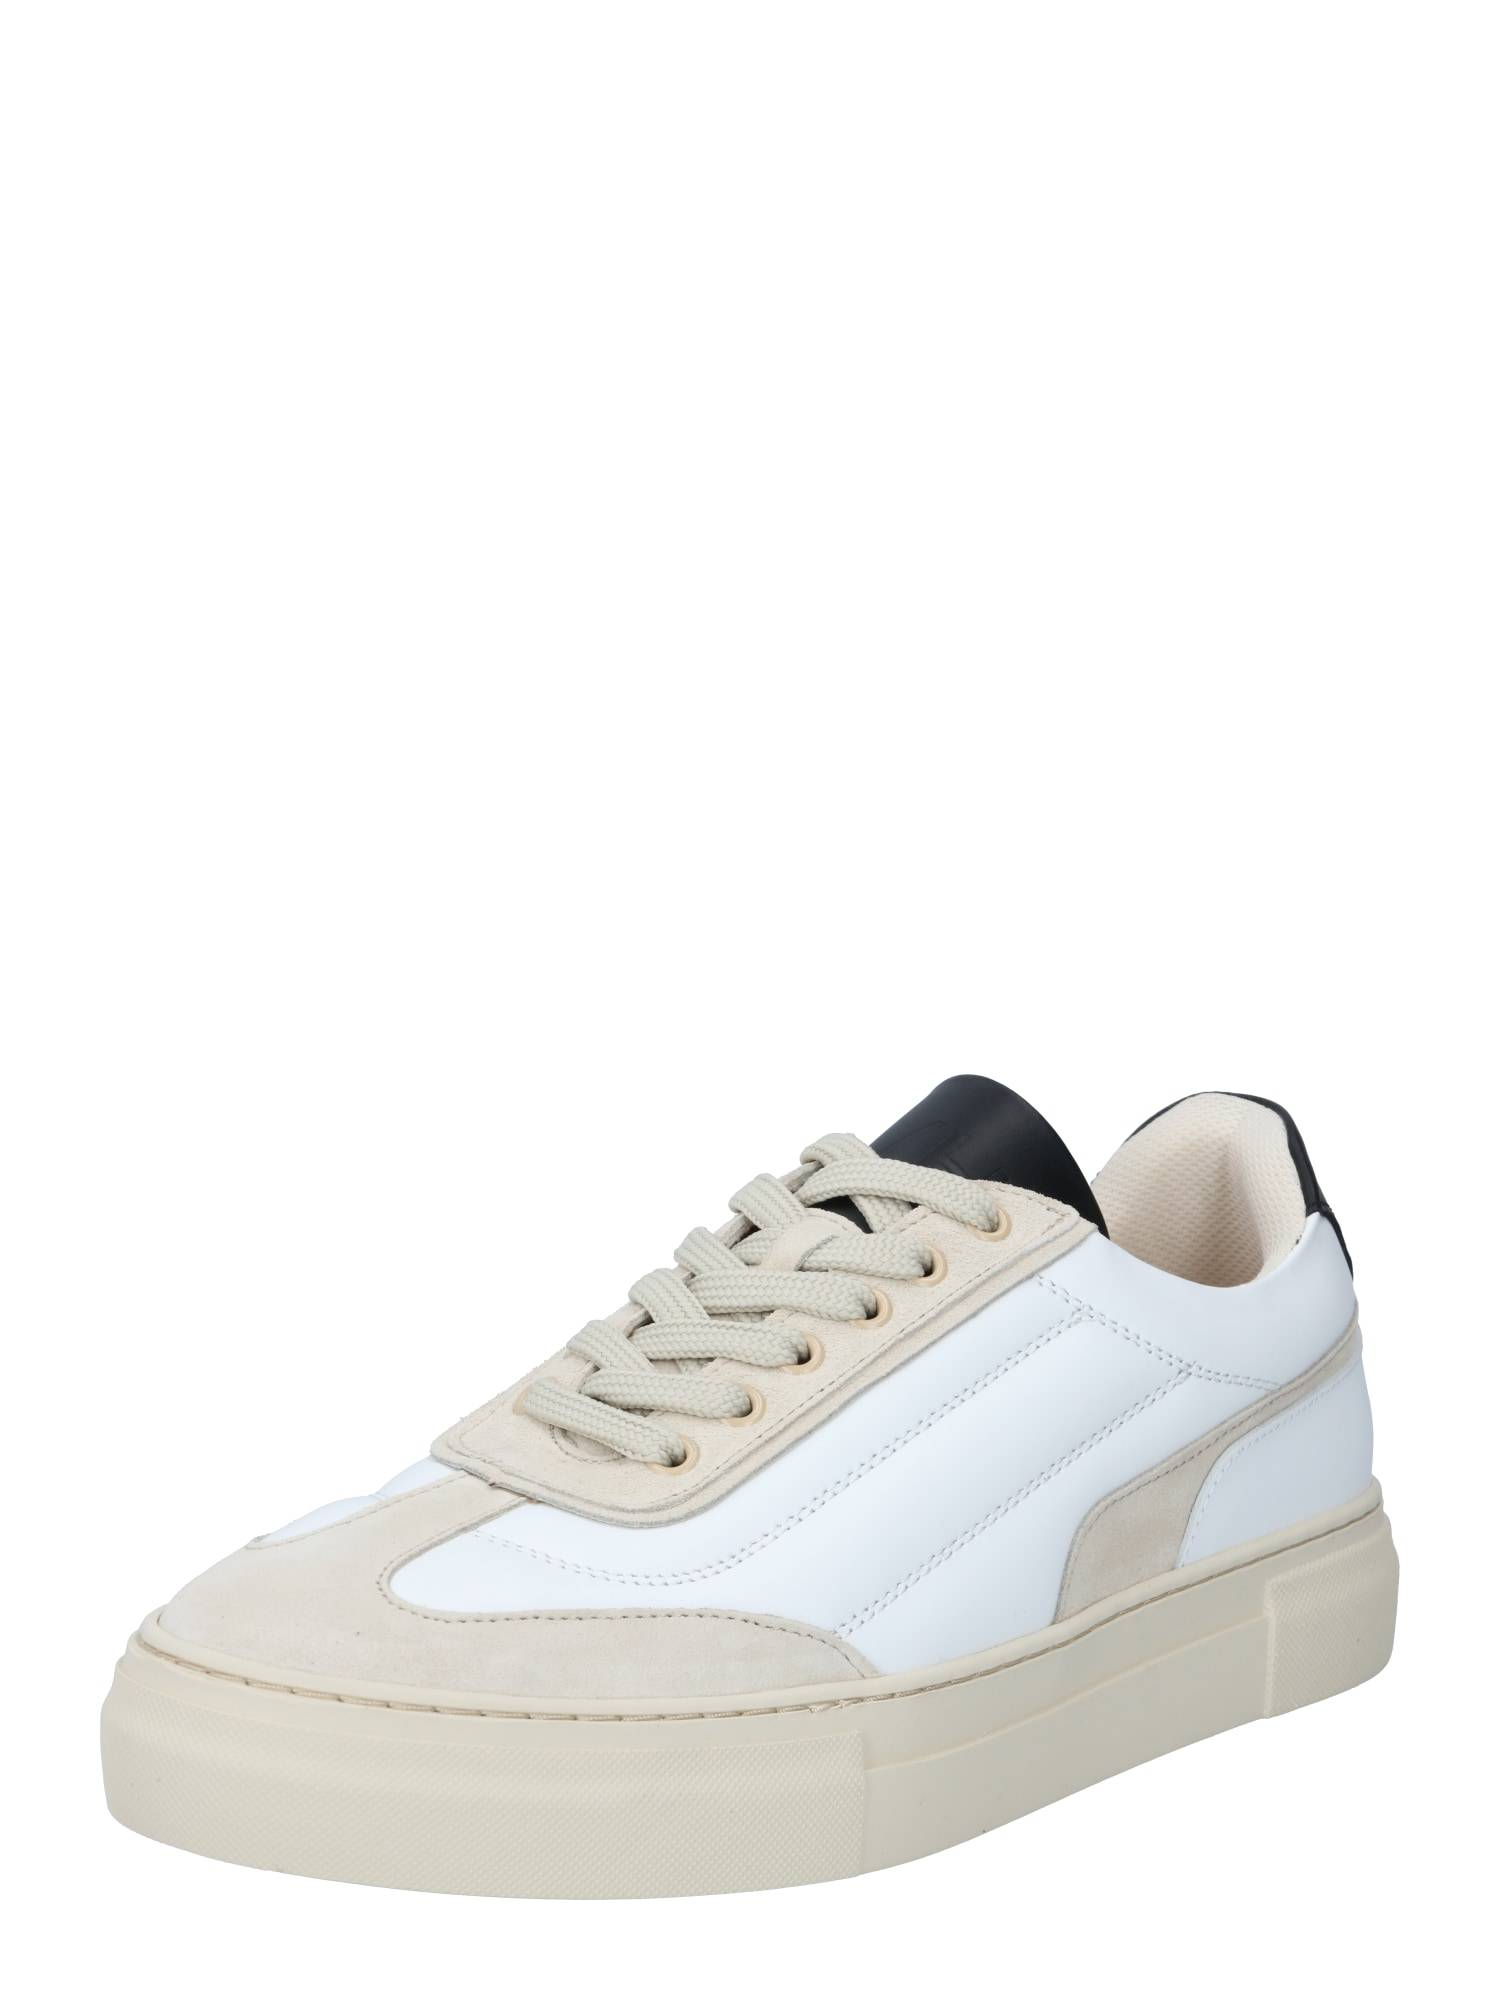 SELECTED HOMME Baskets basses 'SLHDAVID CHUNKY QUILT LEATHER TRAINER B'  - Blanc, Beige - Taille: 42 - male